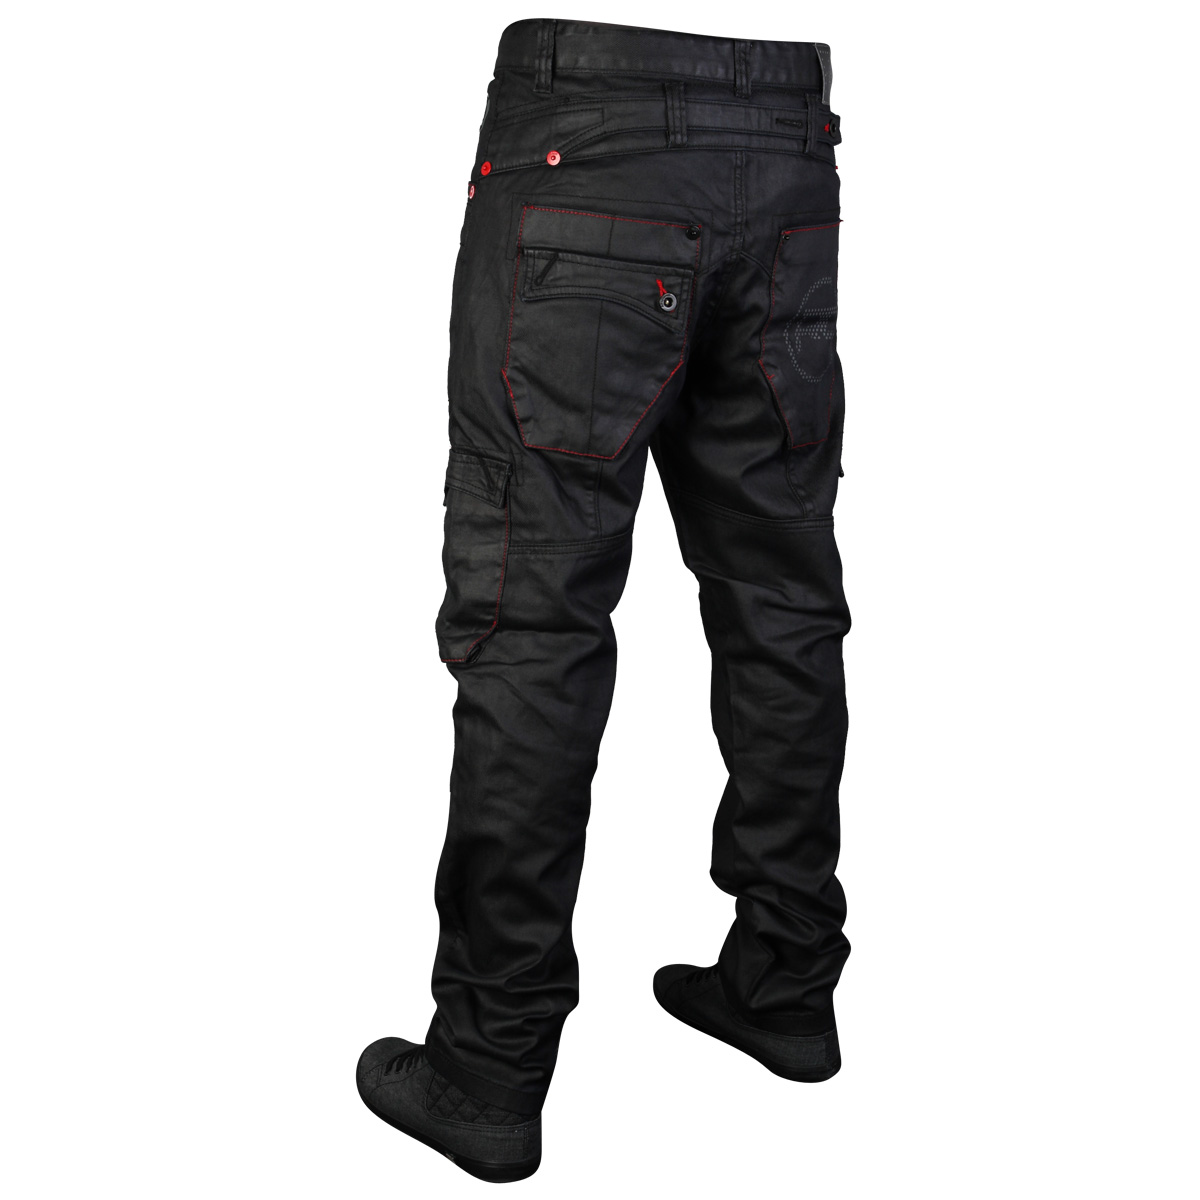 BB MENS BLACK RAWCRAFT LETO DESIGNER STRAIGHT FIT DENIM JEANS | eBay